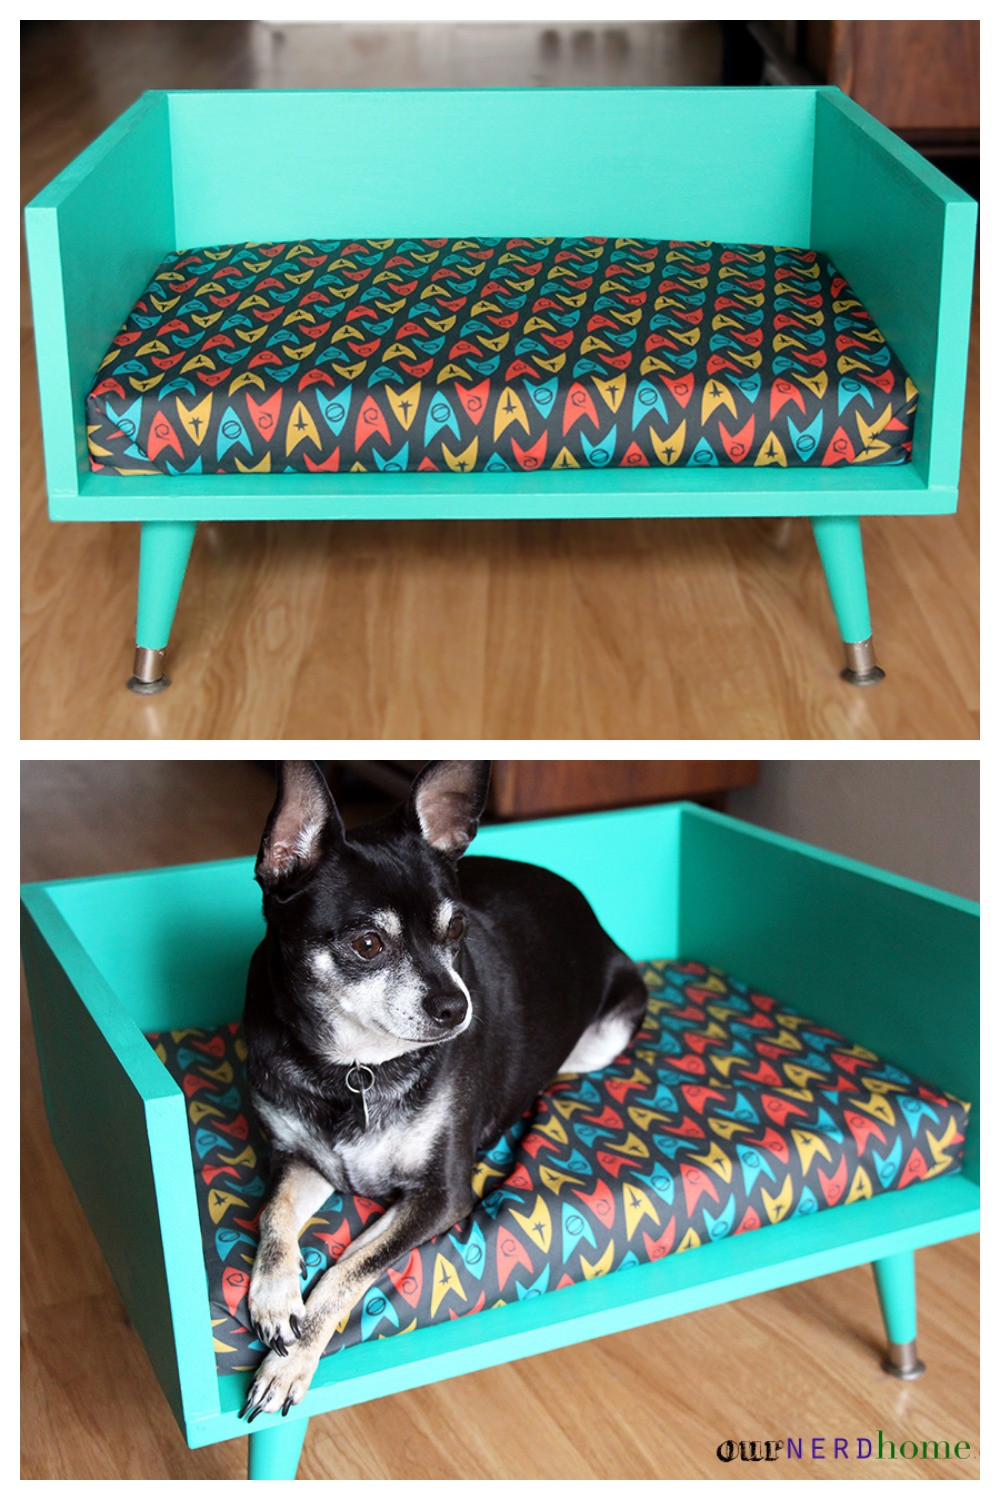 Best ideas about DIY Dog Beds . Save or Pin DIY Mid Century Style Pet Bed with a Touch of Star Trek Now.